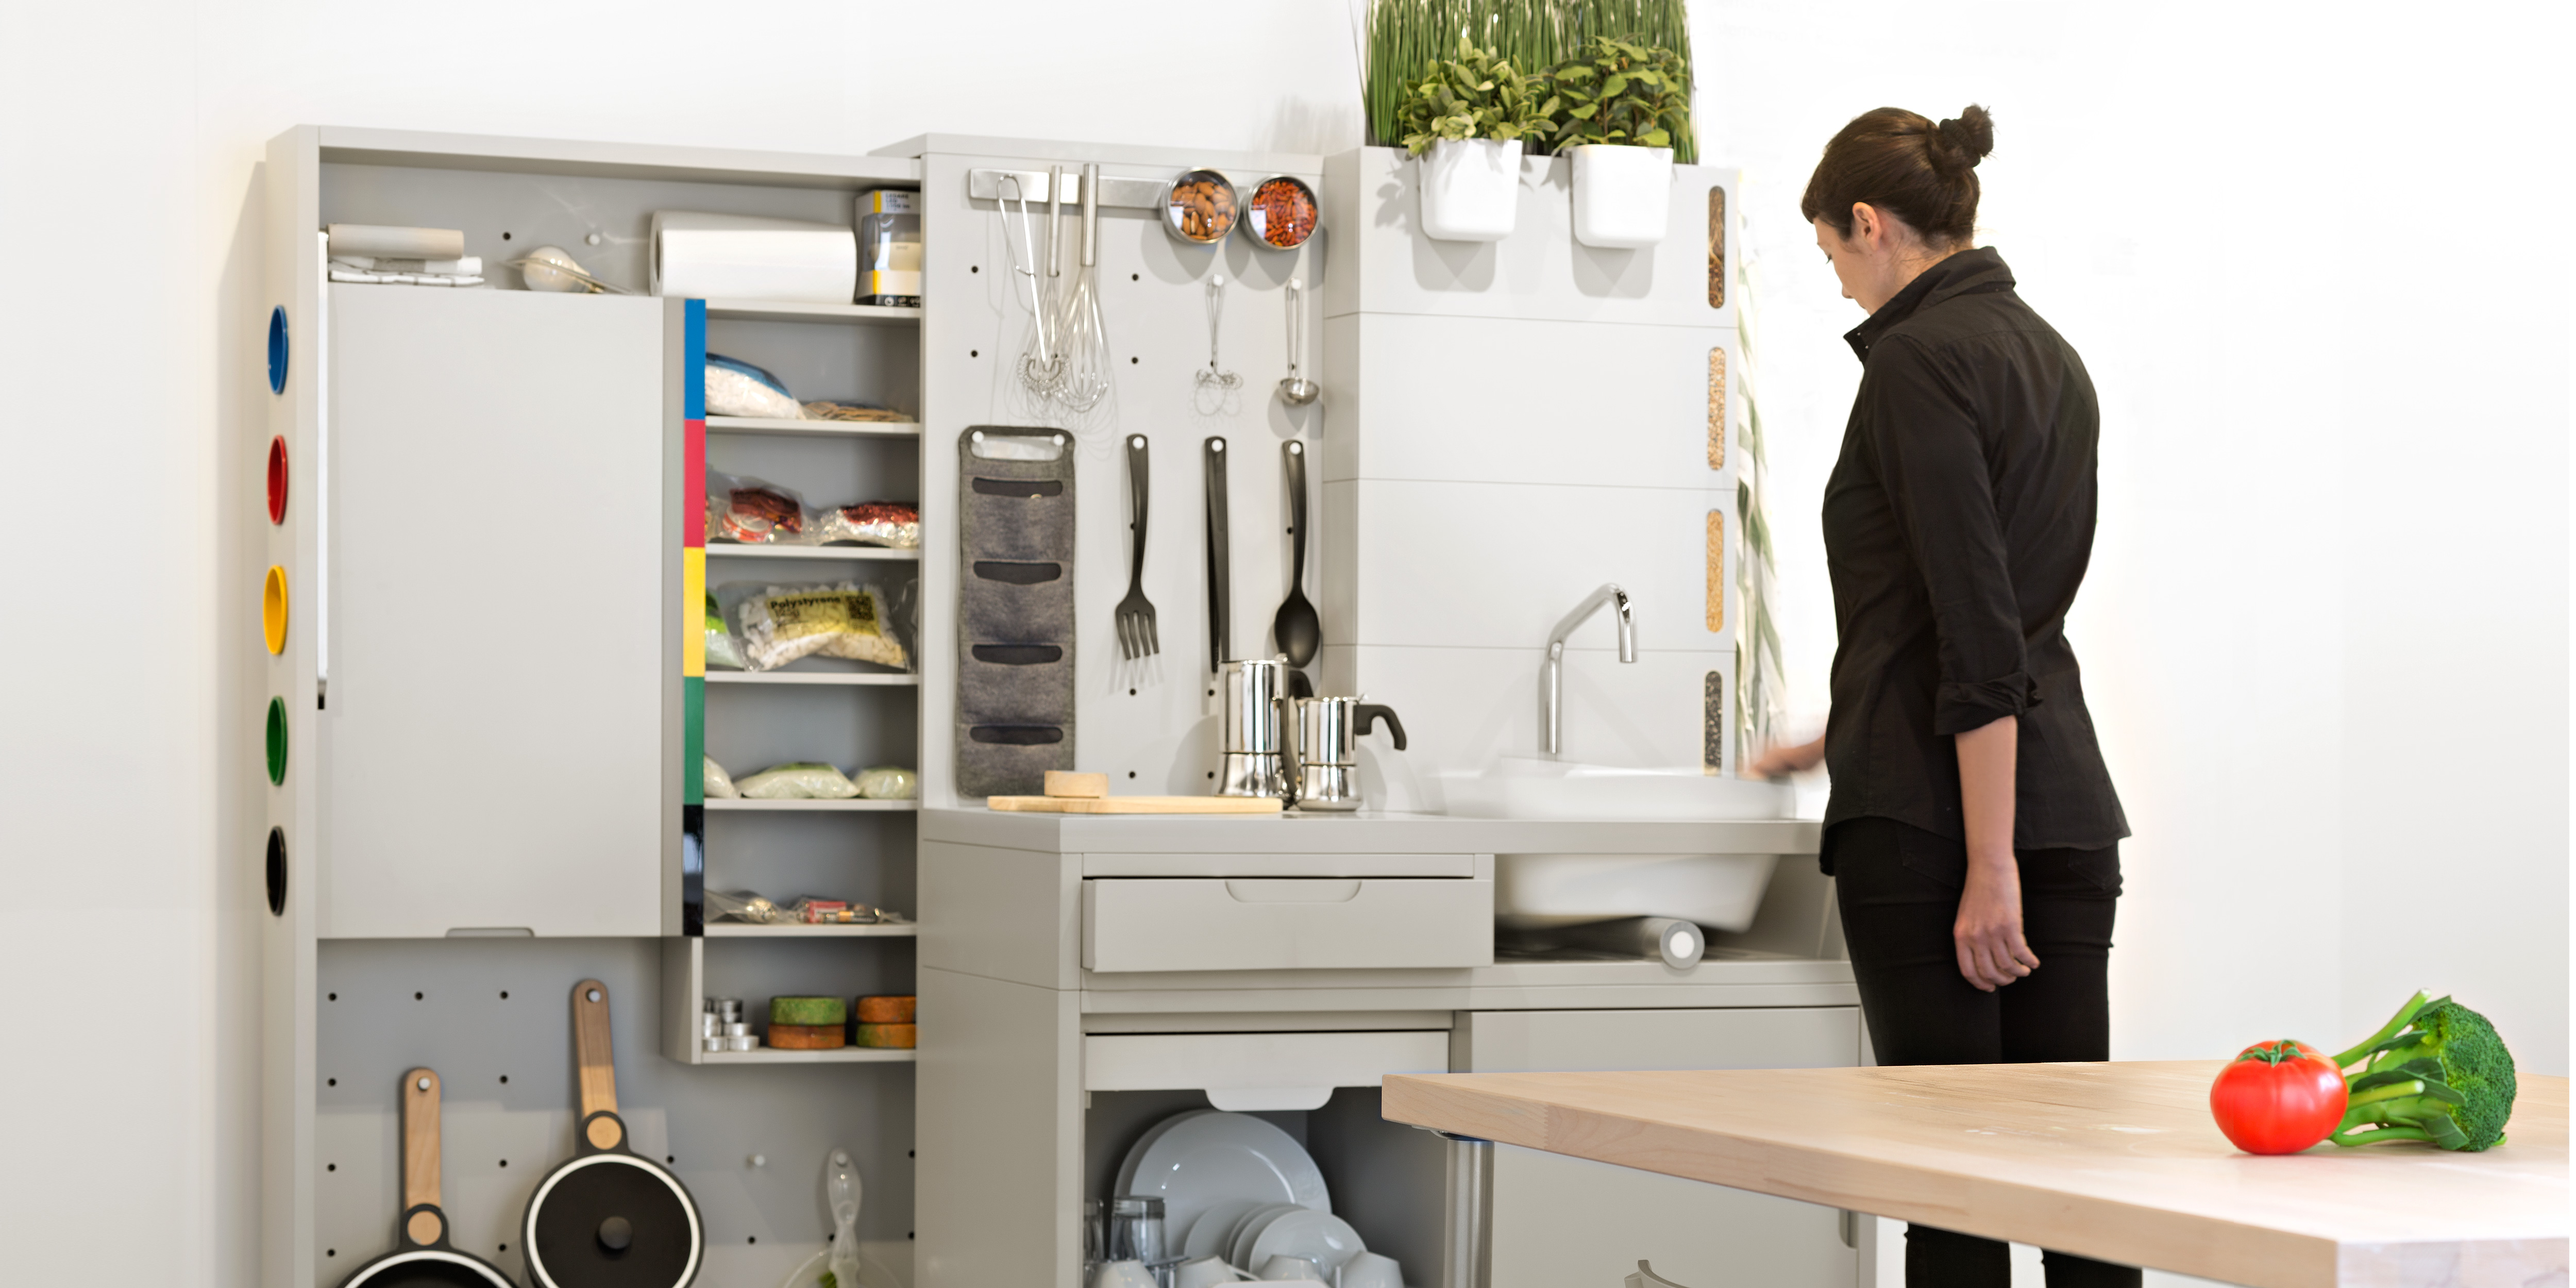 This is what IKEA thinks your future kitchen will look like